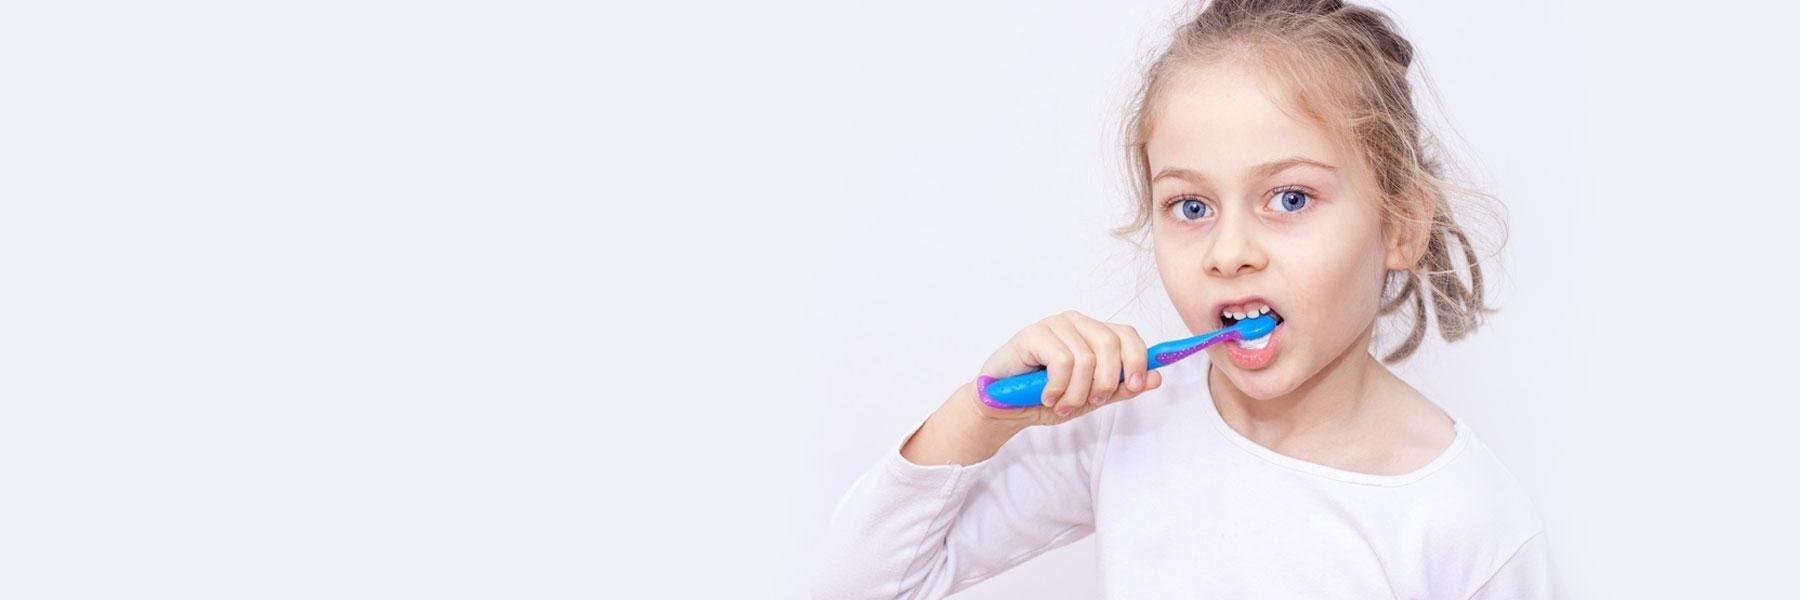 Child holding toothbrush | Dentist Calgary AB